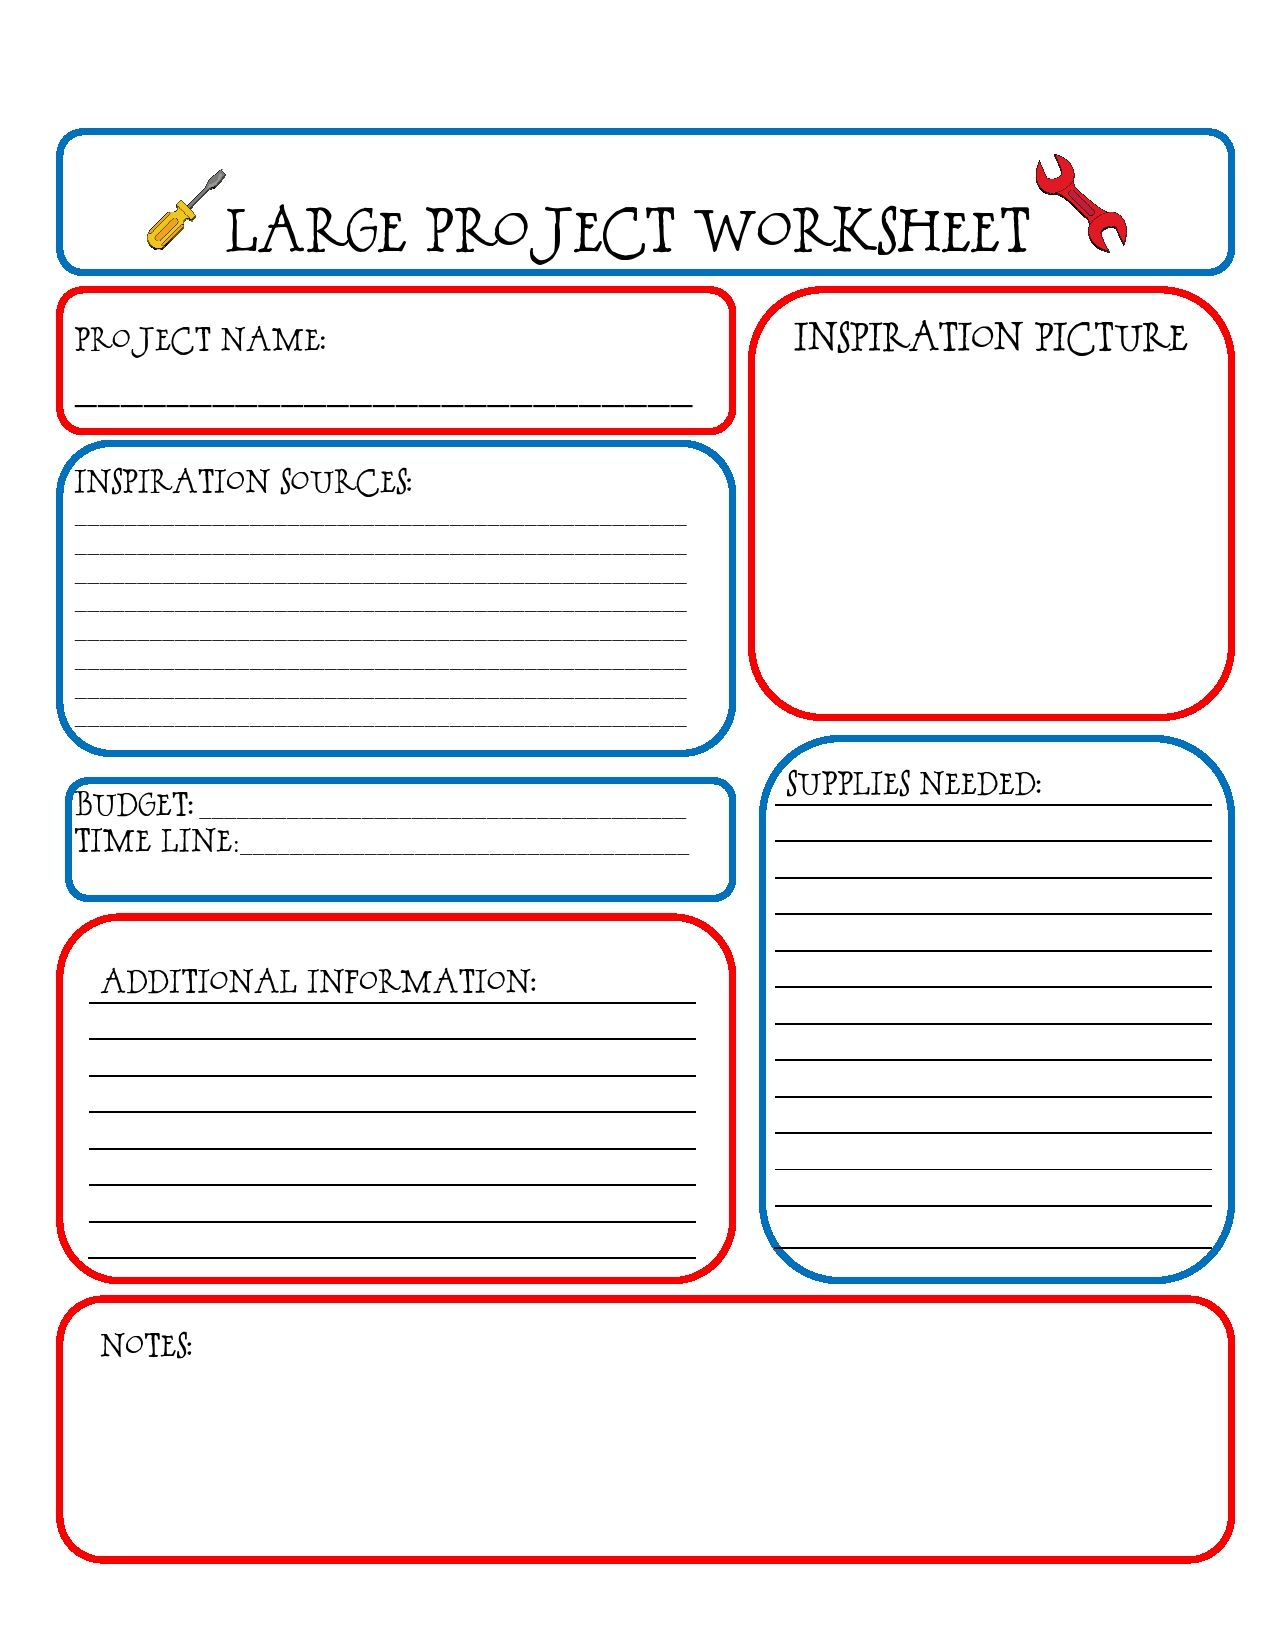 Large Project Worksheet